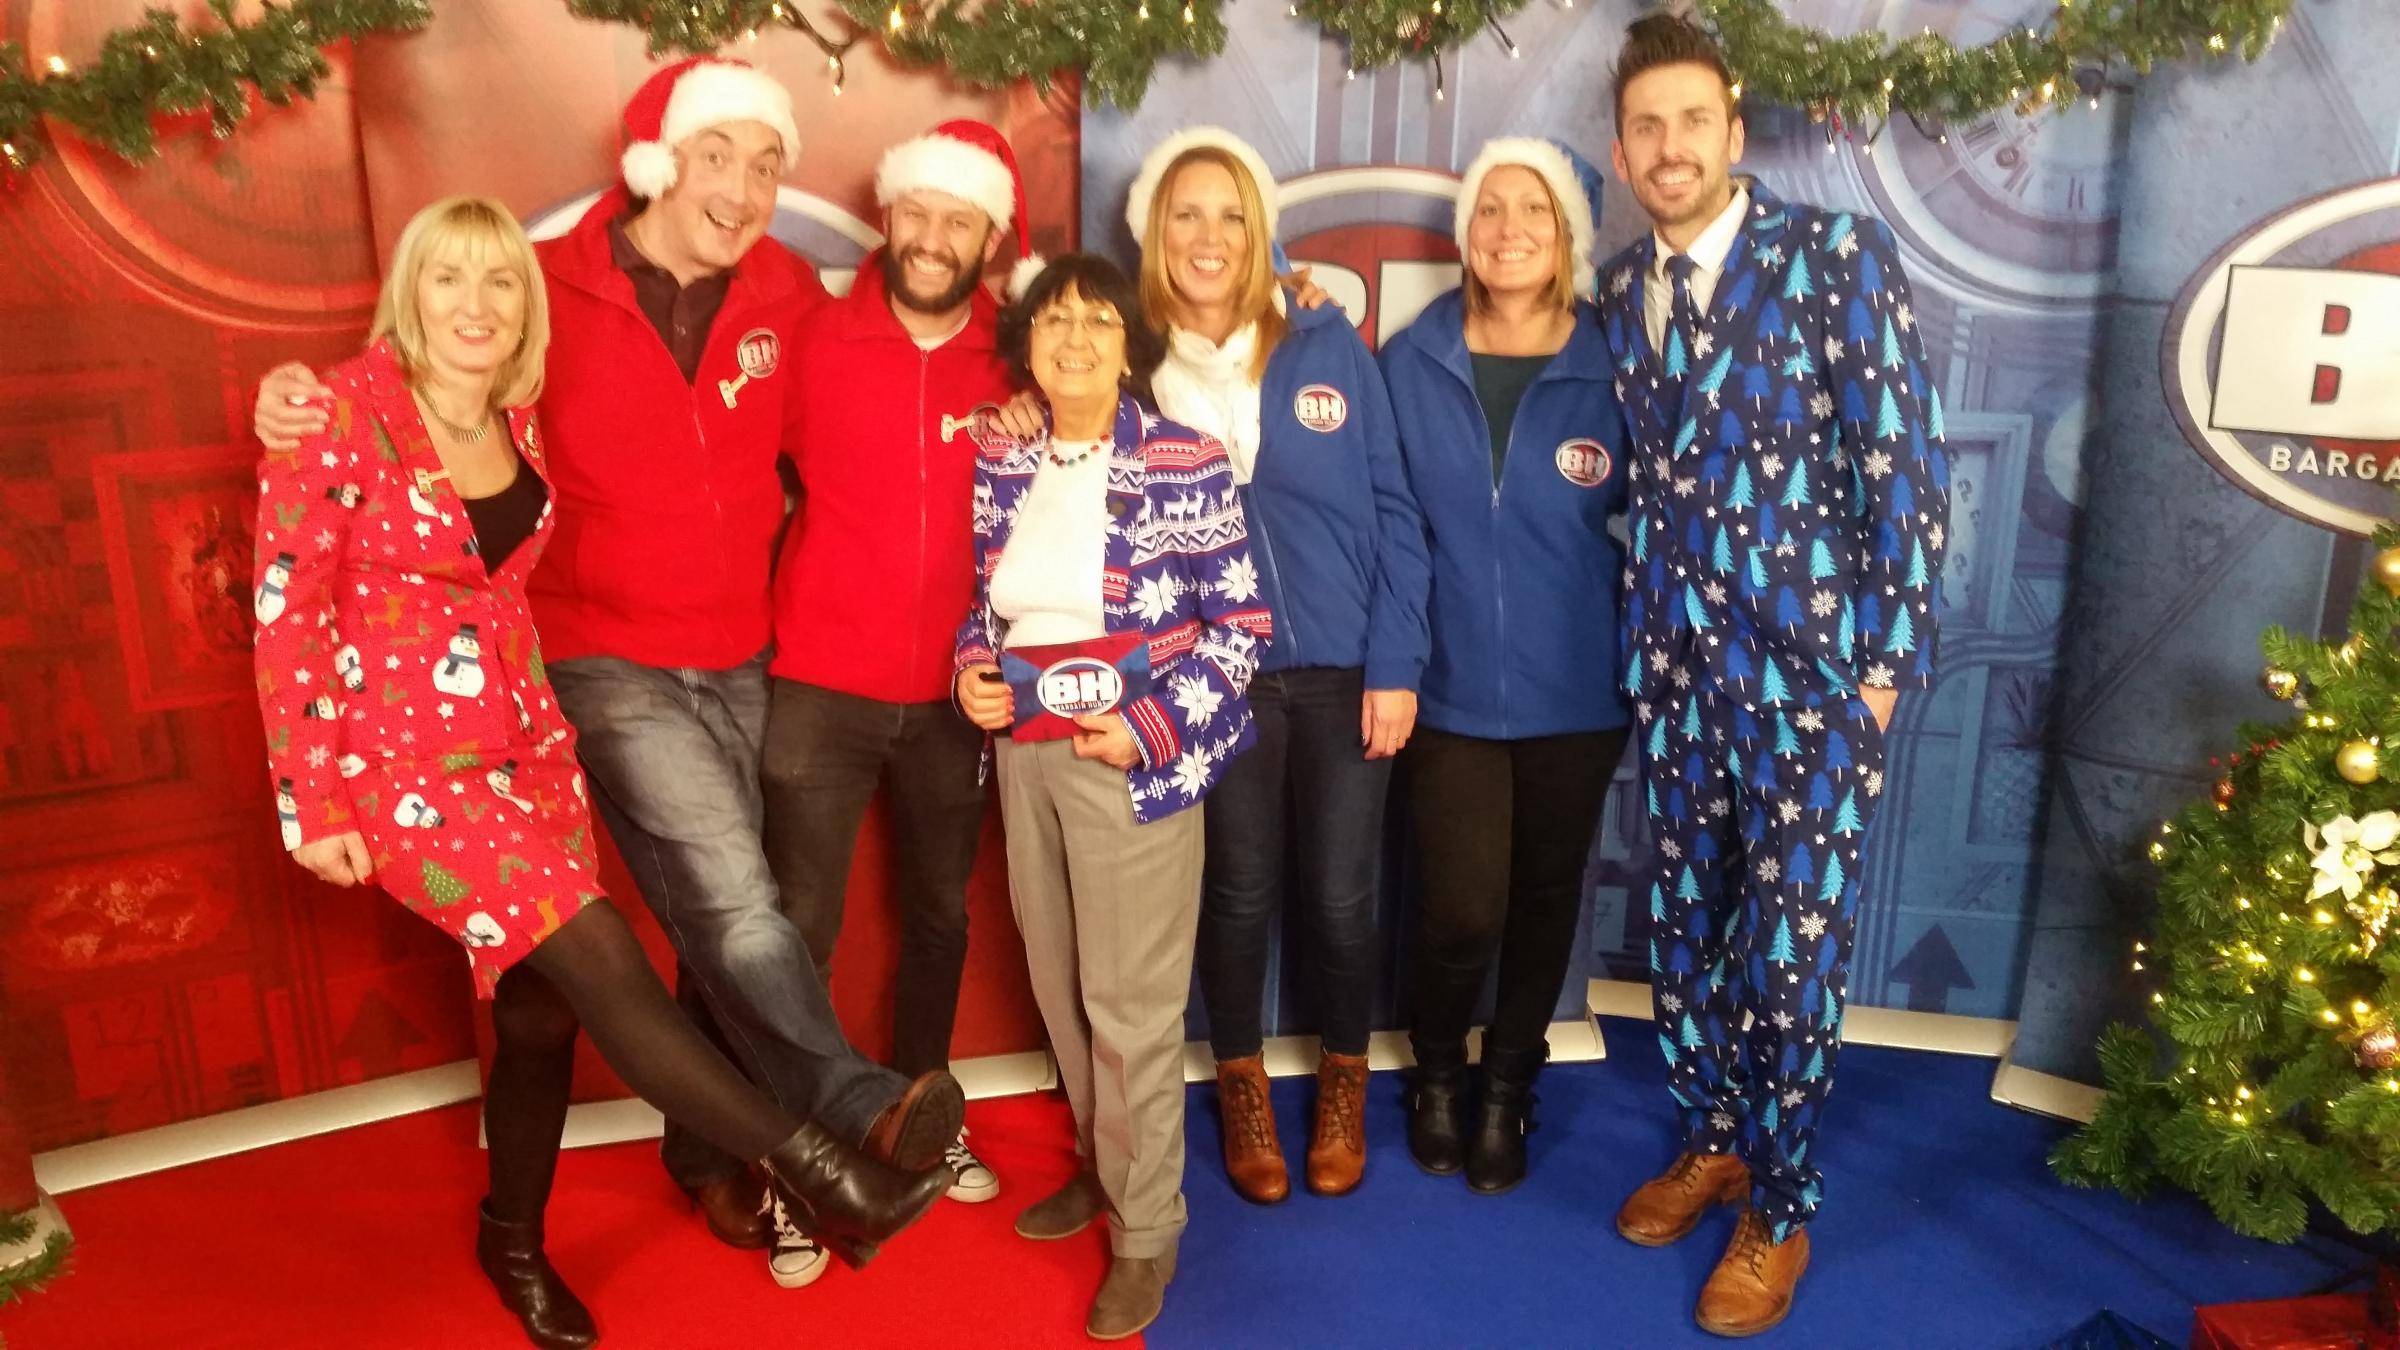 A Christmas Star Cast.Leatherhead Panto Cast And Crew Will Star In Bargain Hunt S